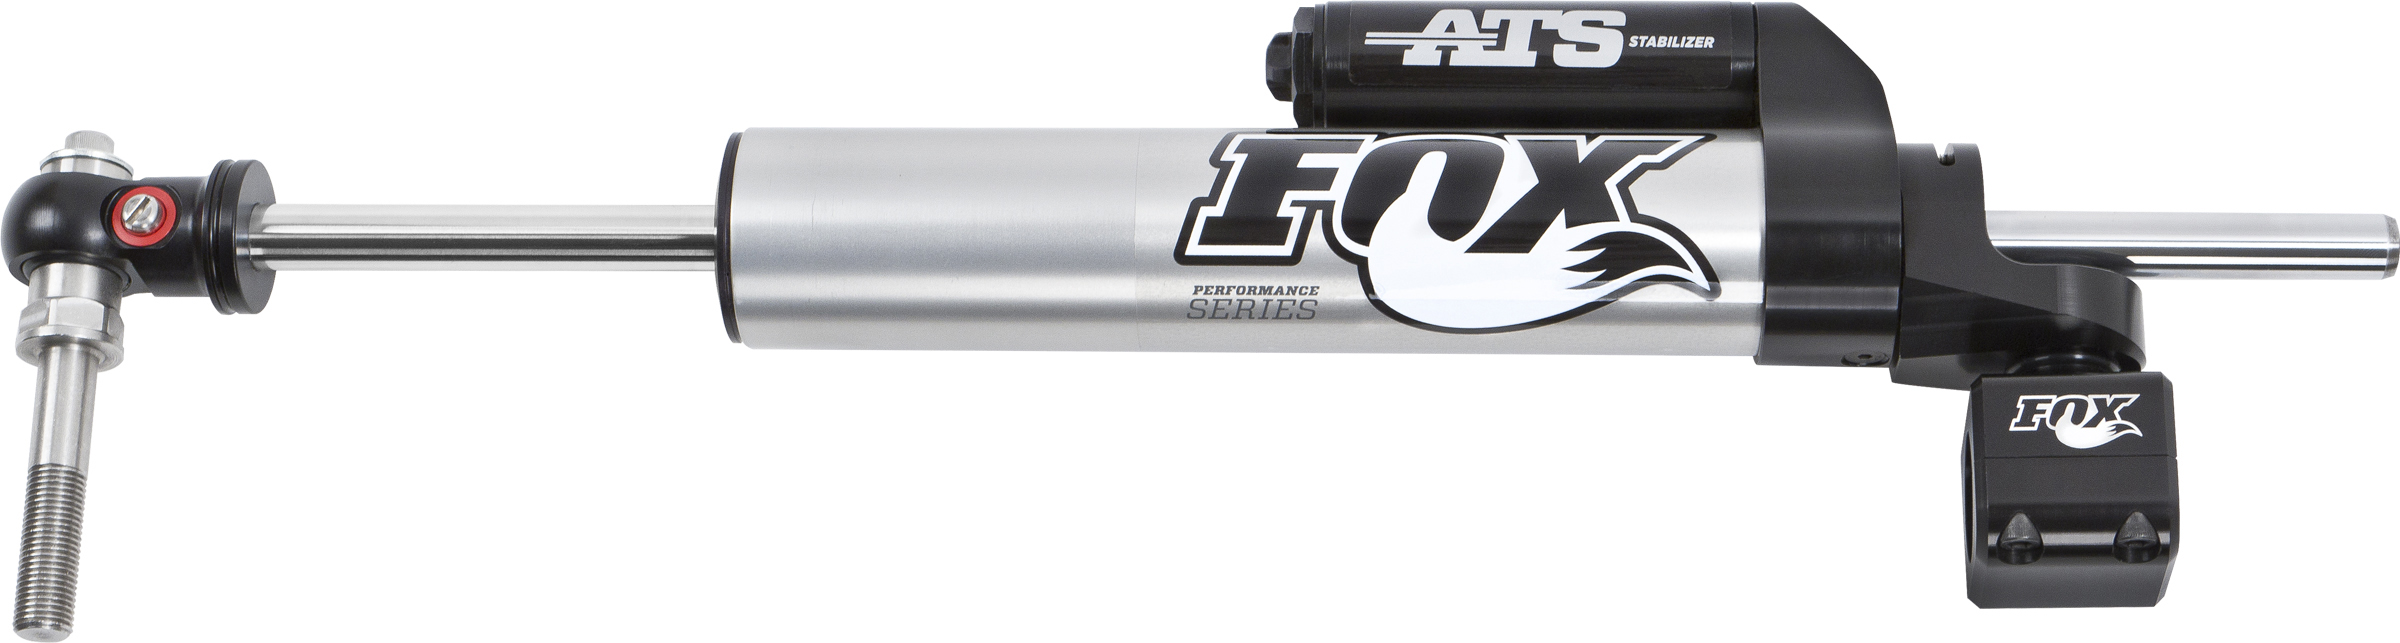 2.0 Performance Series ATS Stabilizer